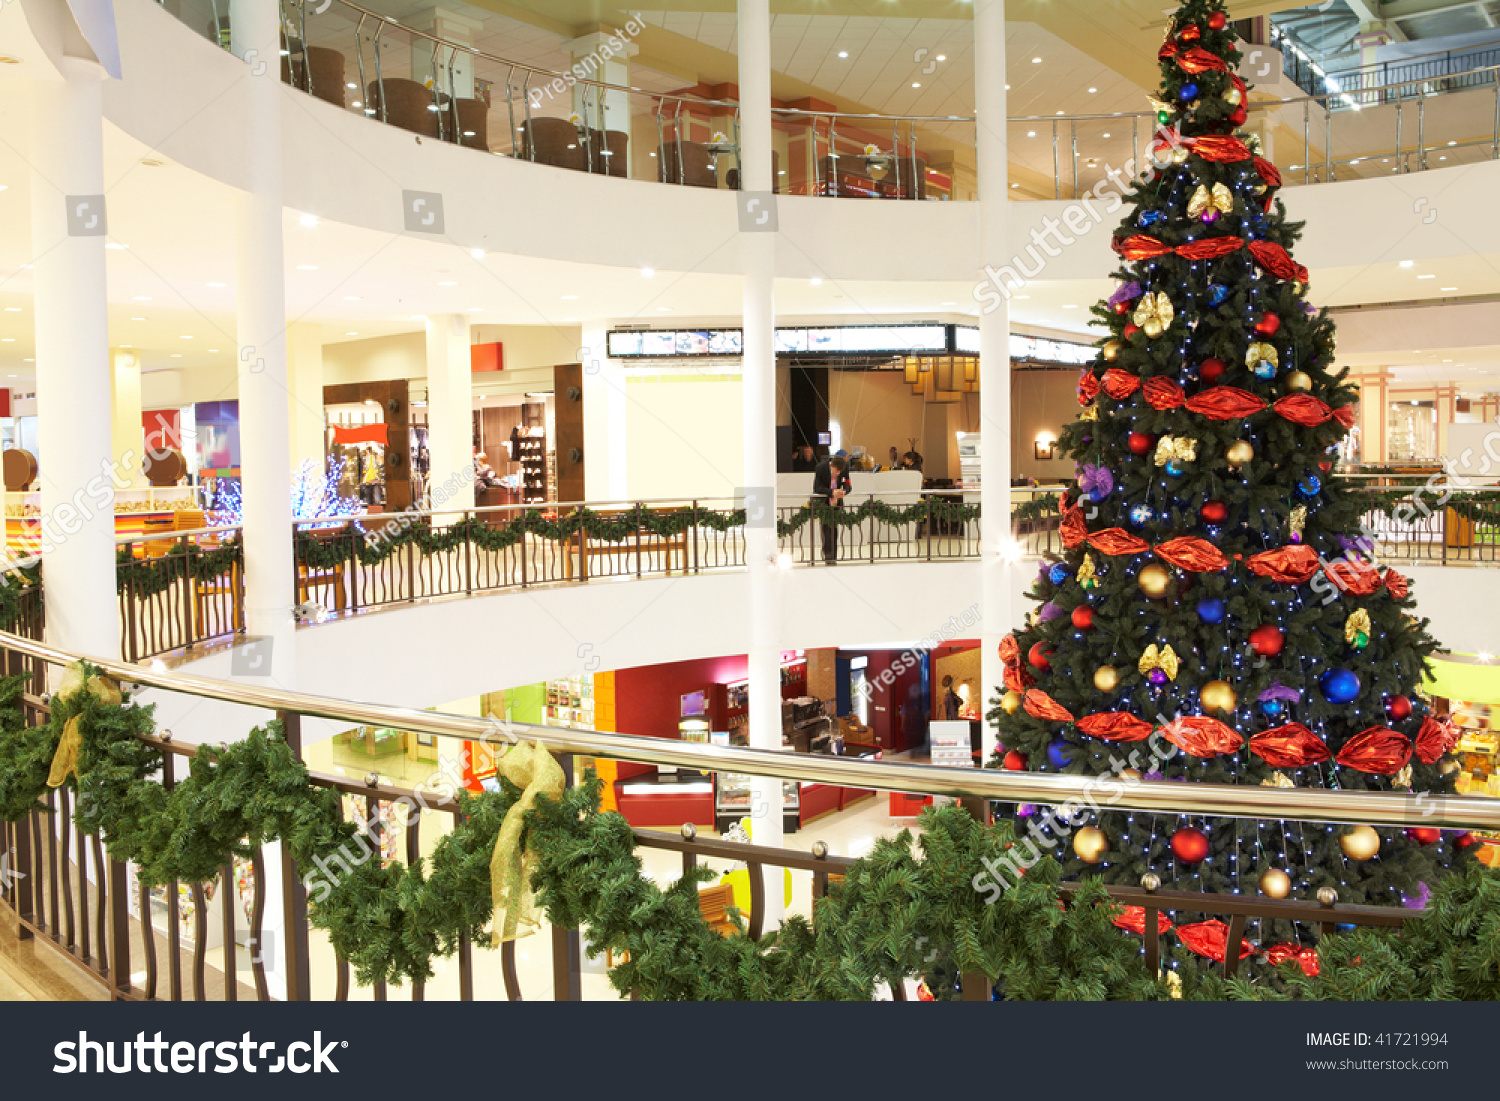 Image Of Big Decorated Christmas Tree In The Mall Stock Photo 41721994